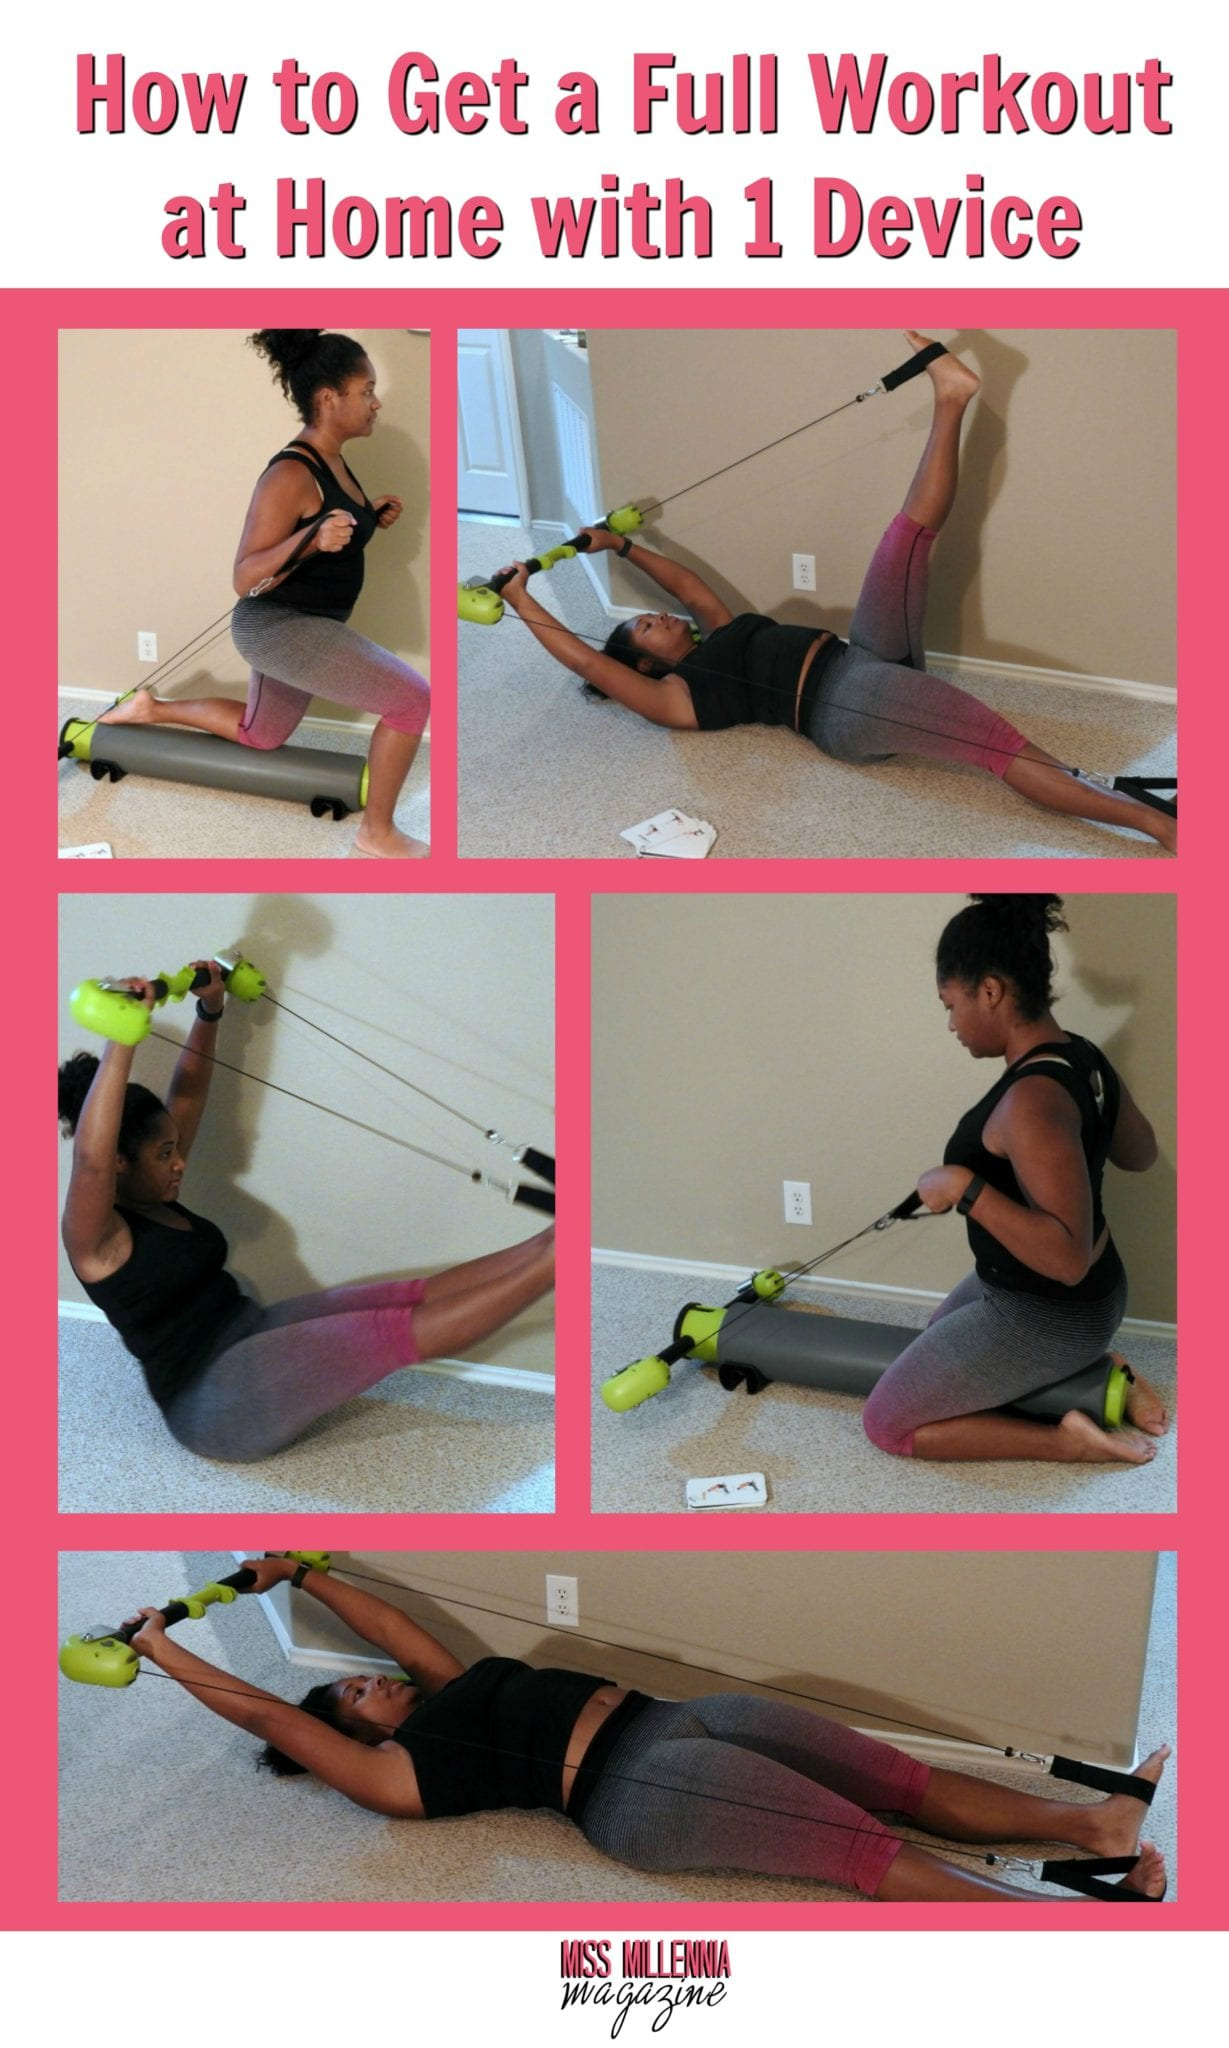 how-to-get-a-full-workout-at-home-with-one-device